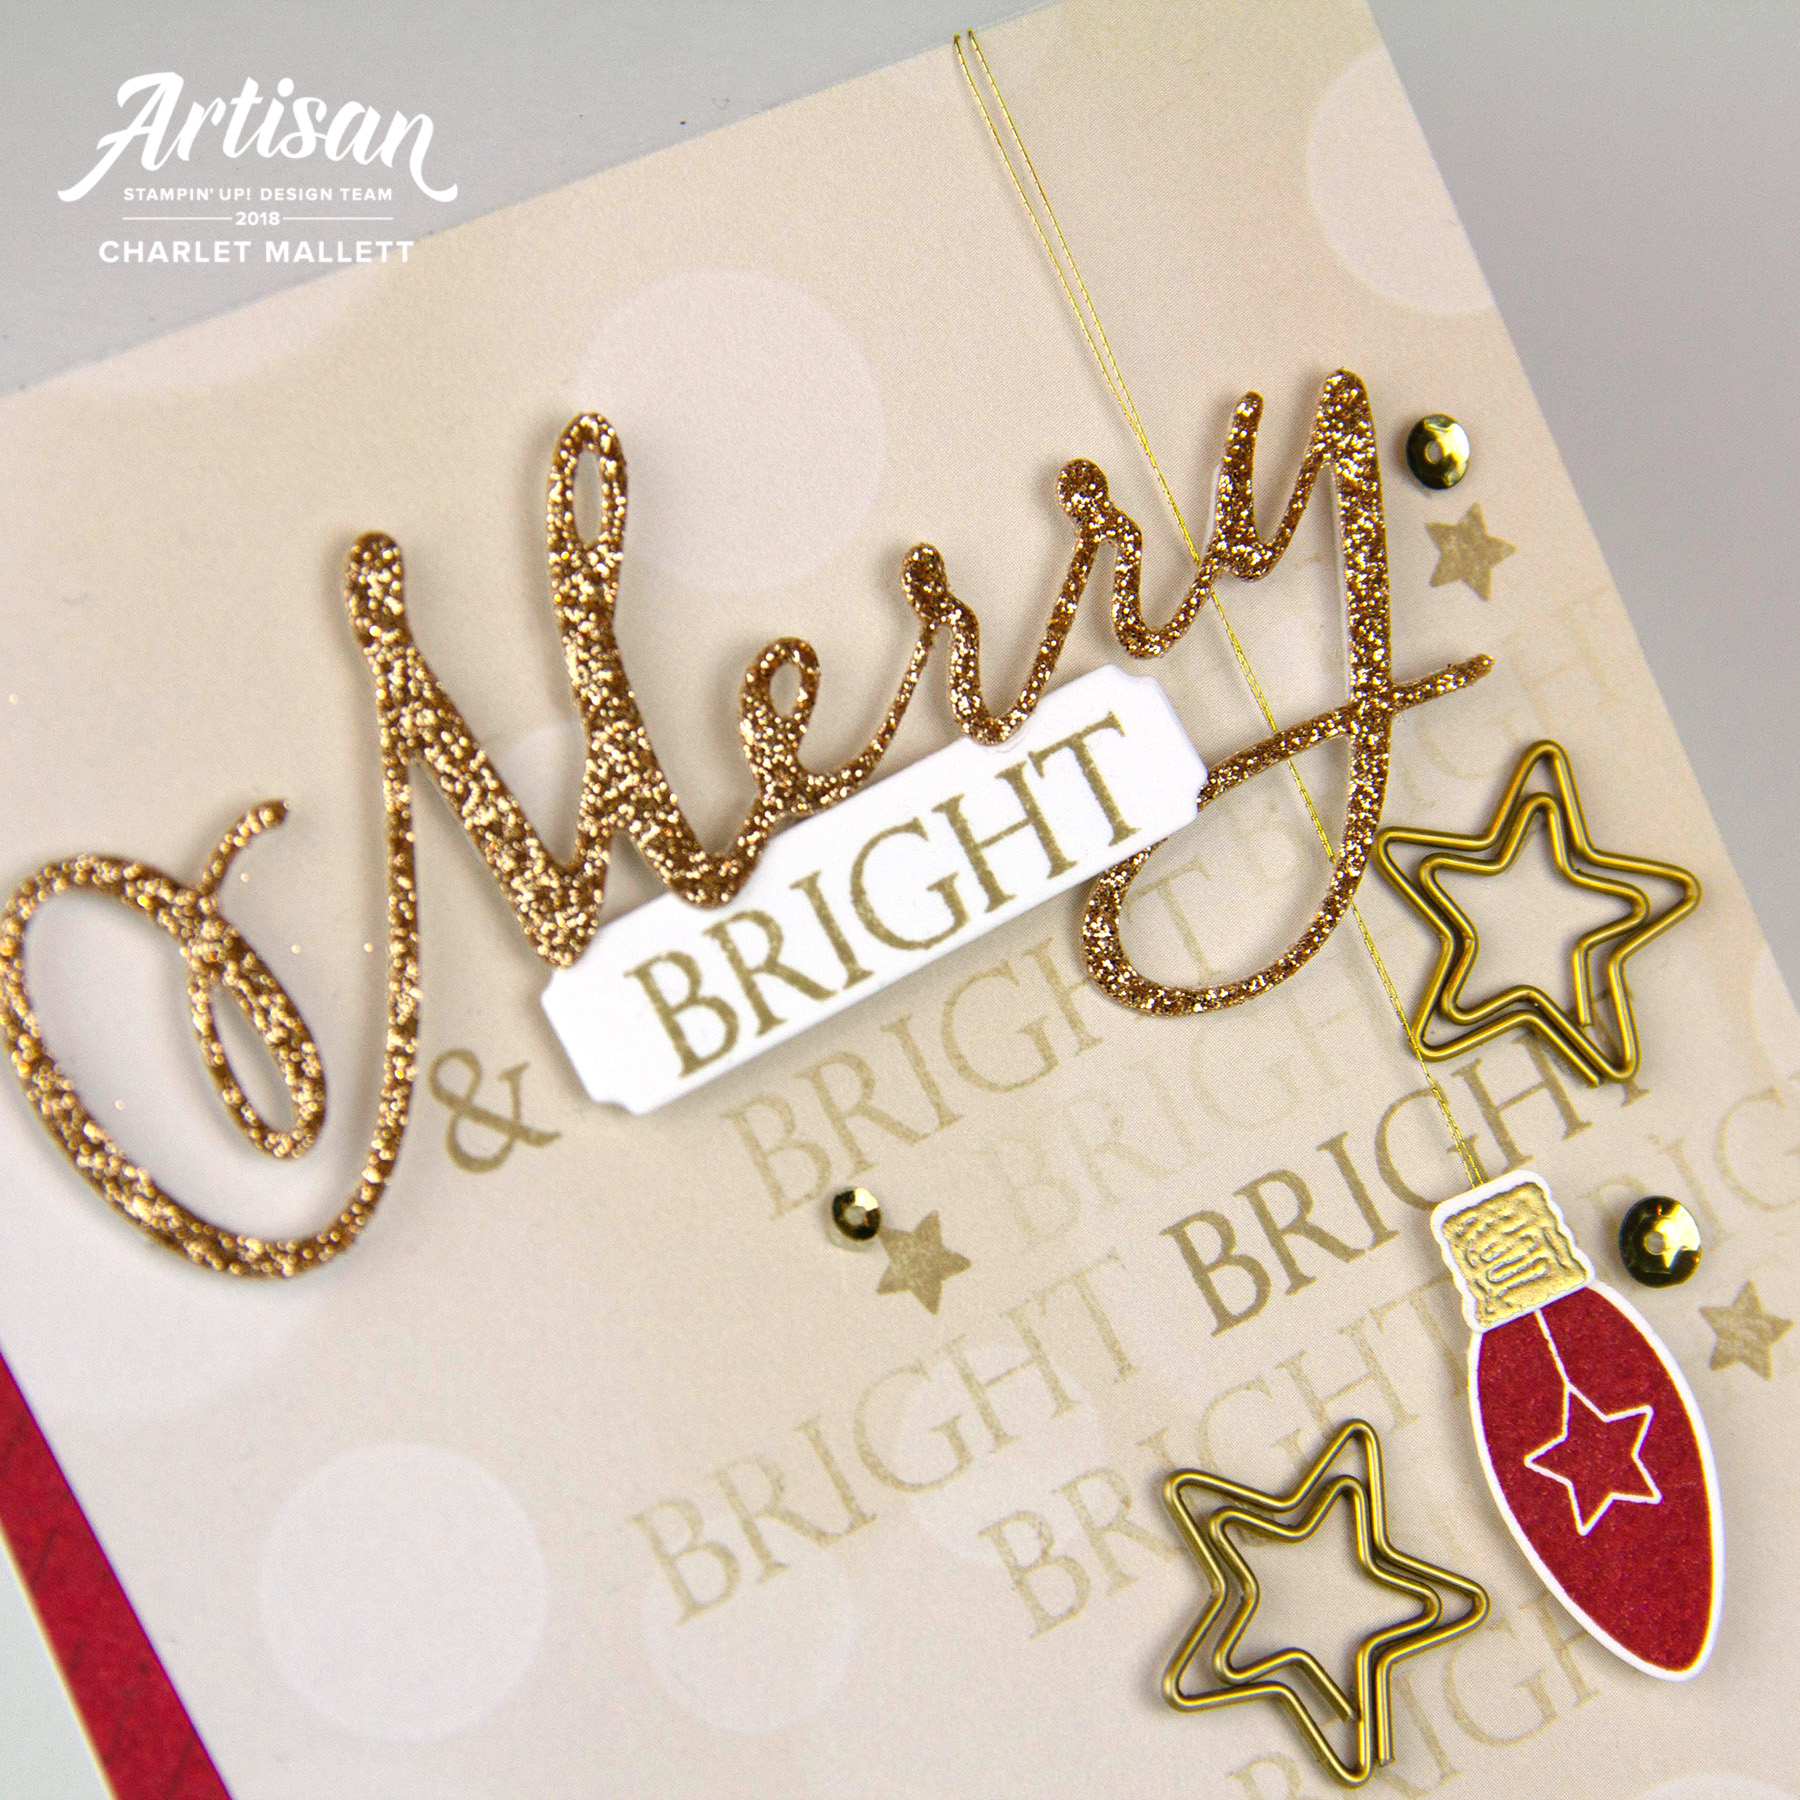 Making Christmas Bright and Merry Christmas to All - Charlet Mallett, Stampin' Up!